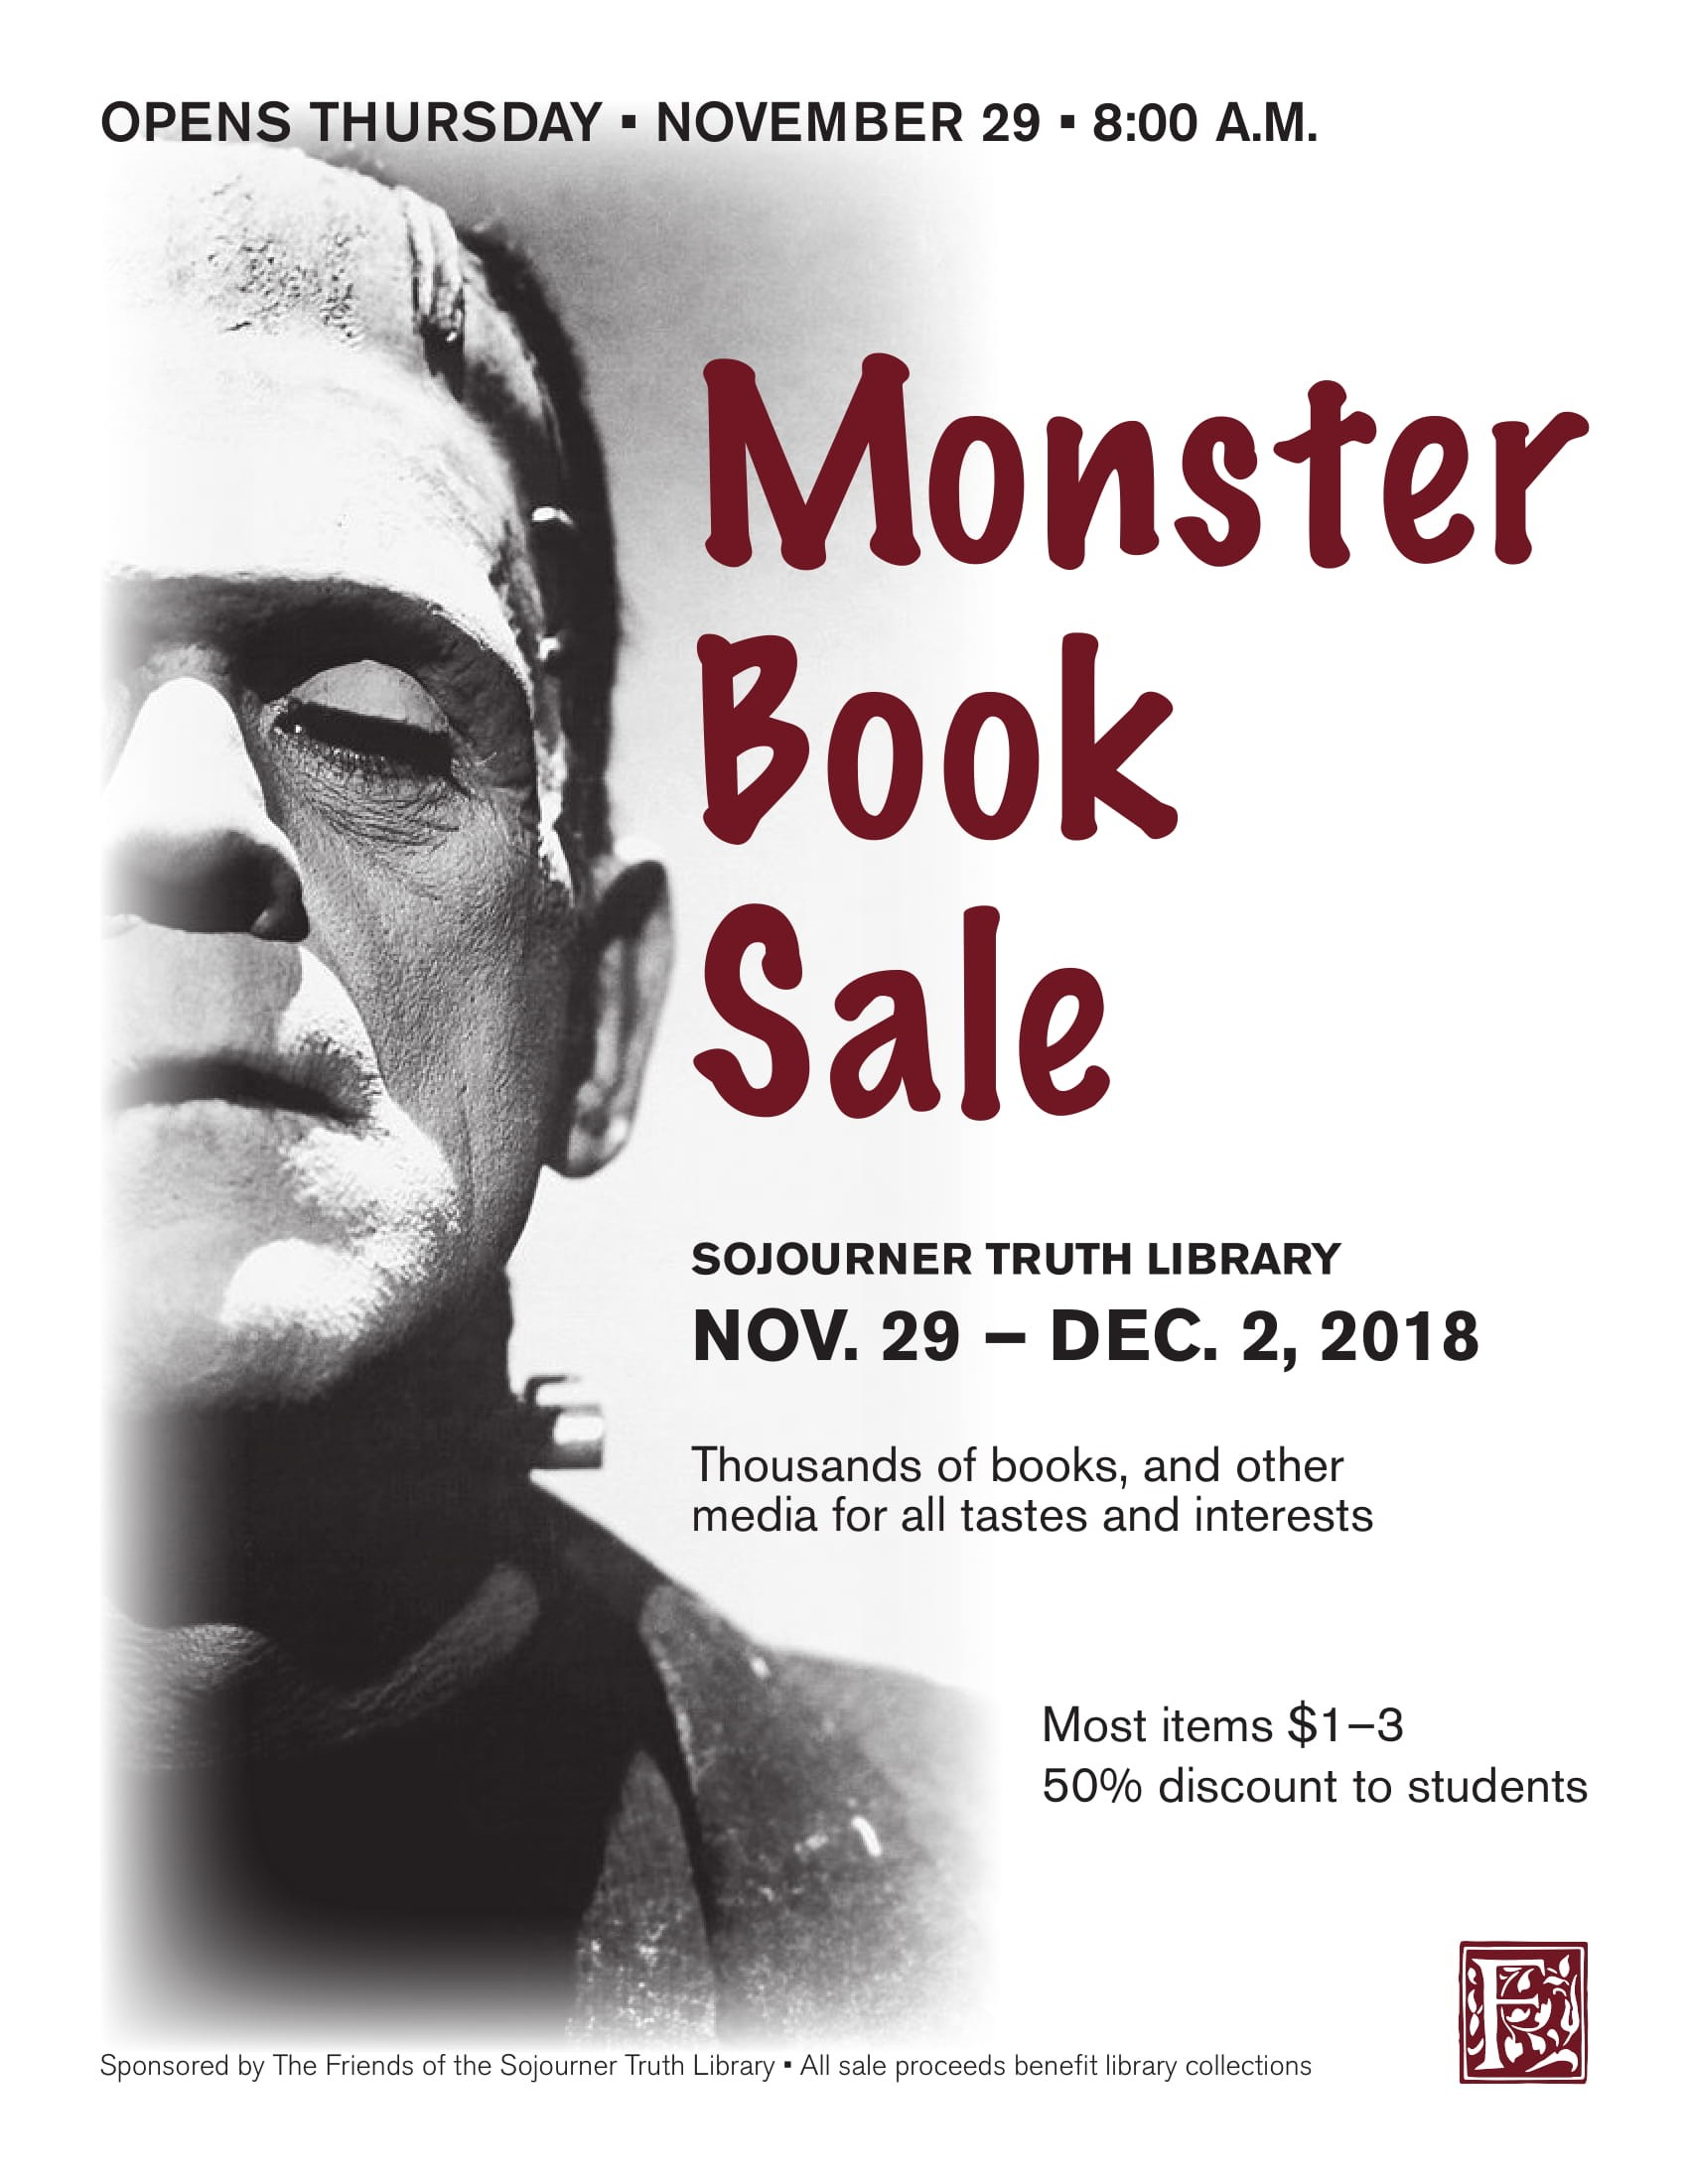 Friends of the Library Annual Book and Media Sale